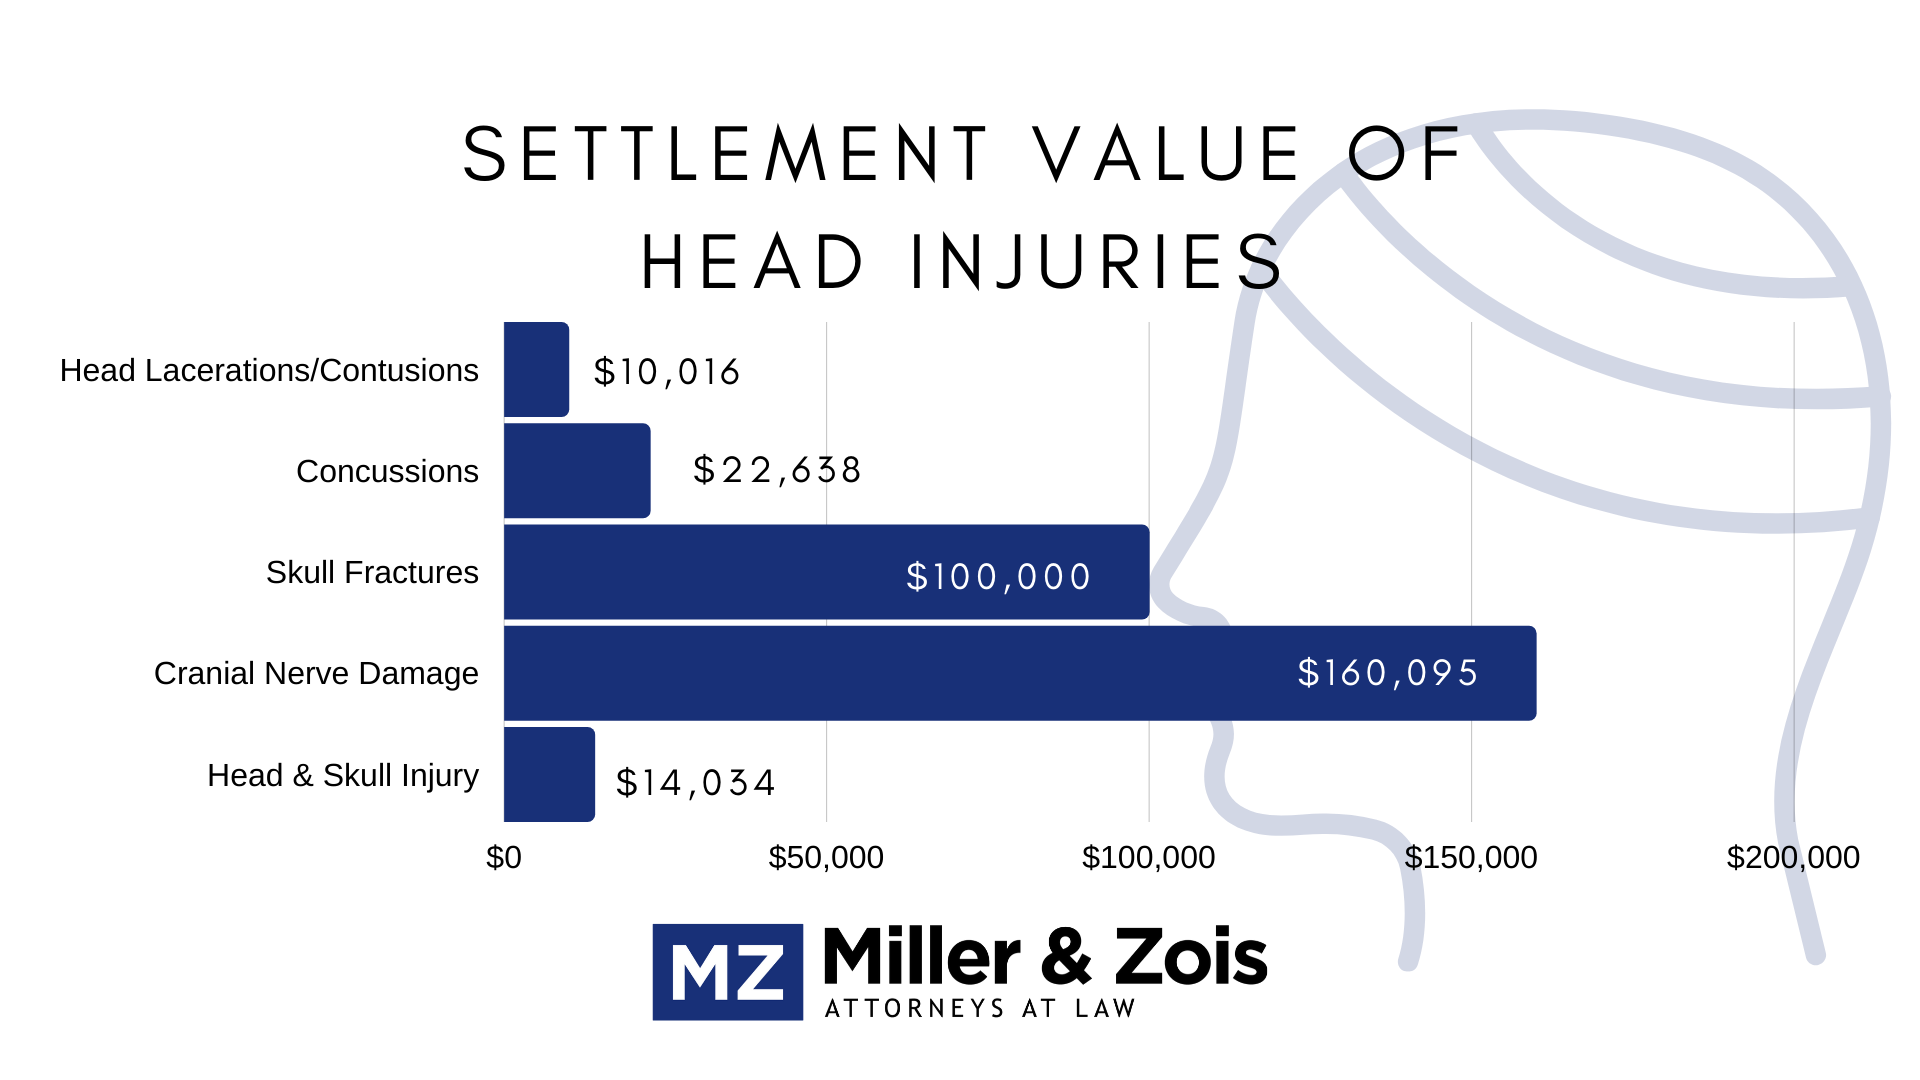 Settlement-Value-of-Head-Injuries